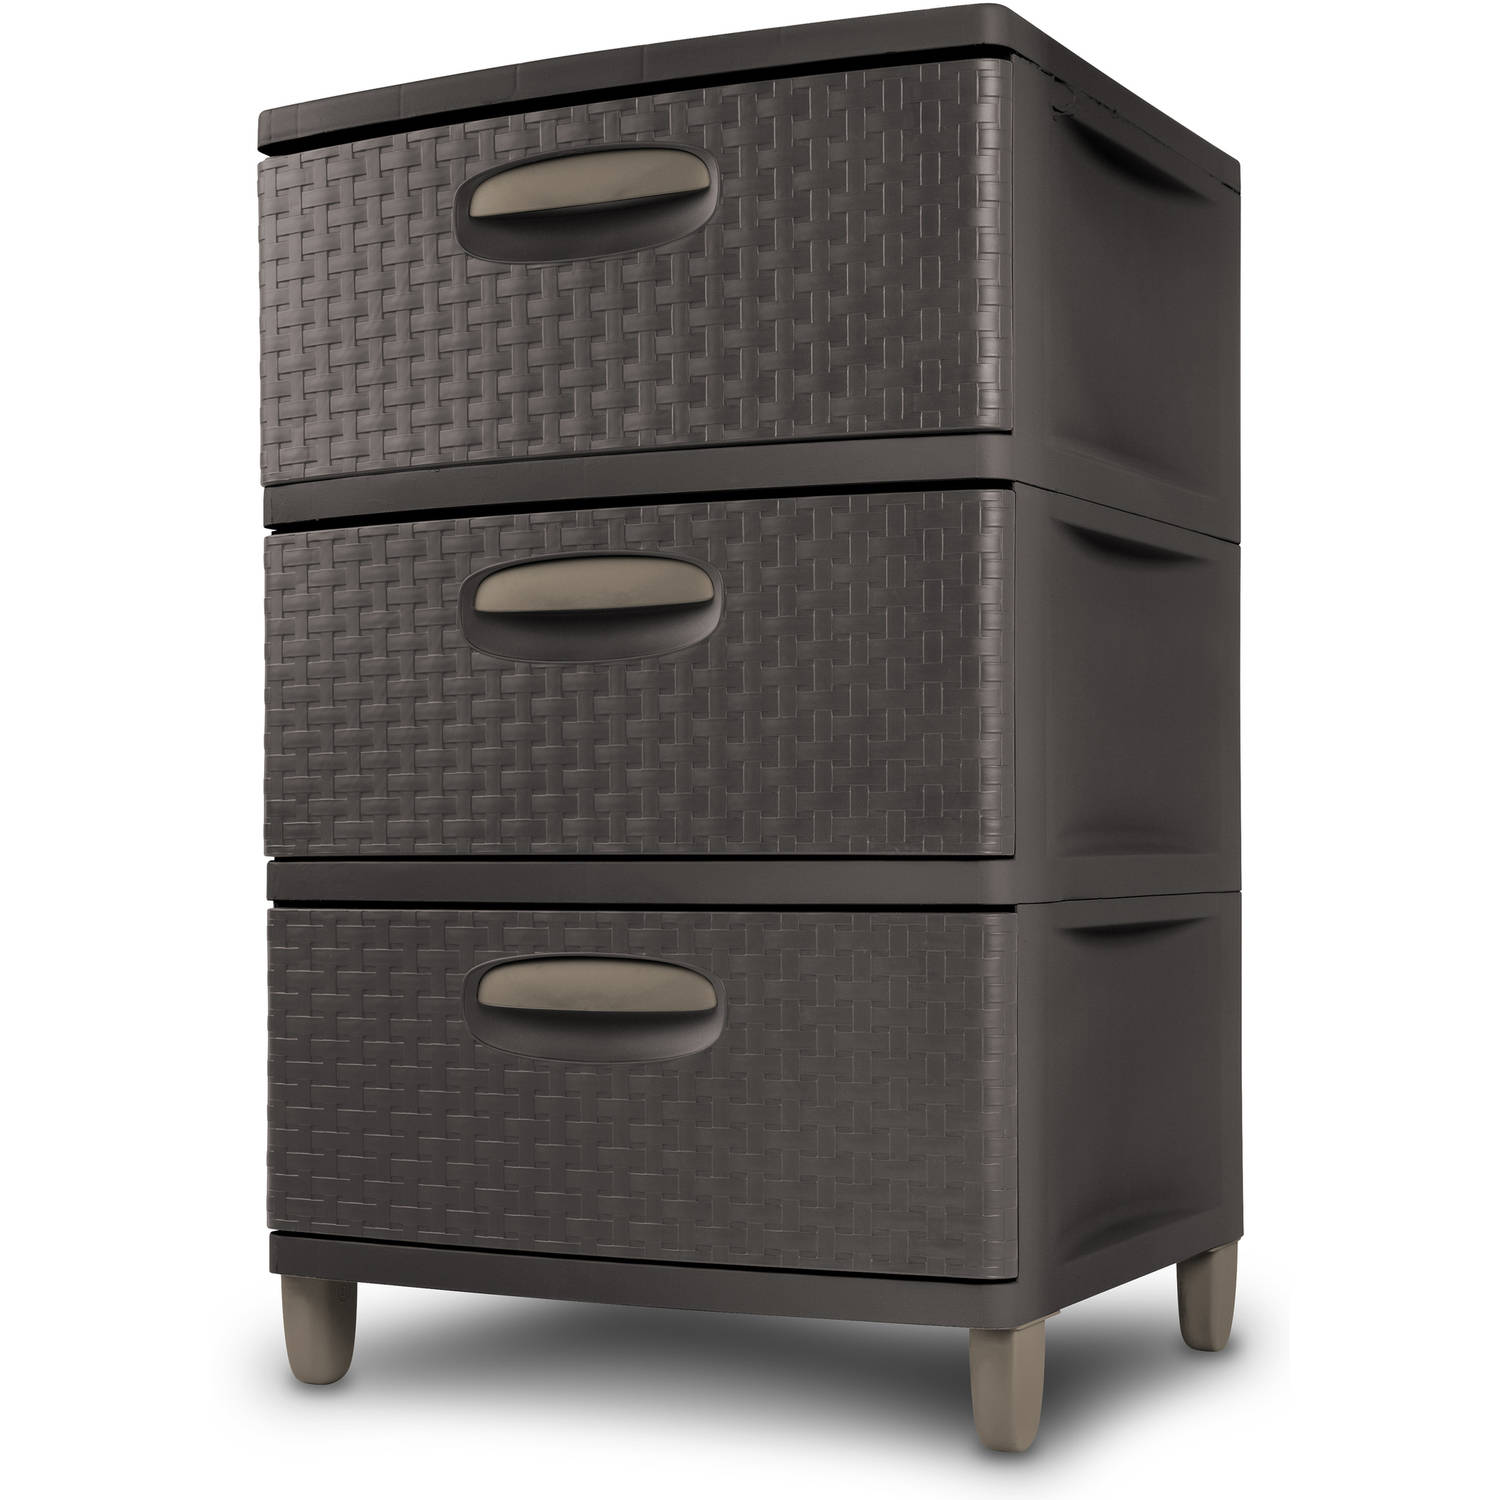 Sterilite 3 Weave Drawer Storage Unit, Espresso